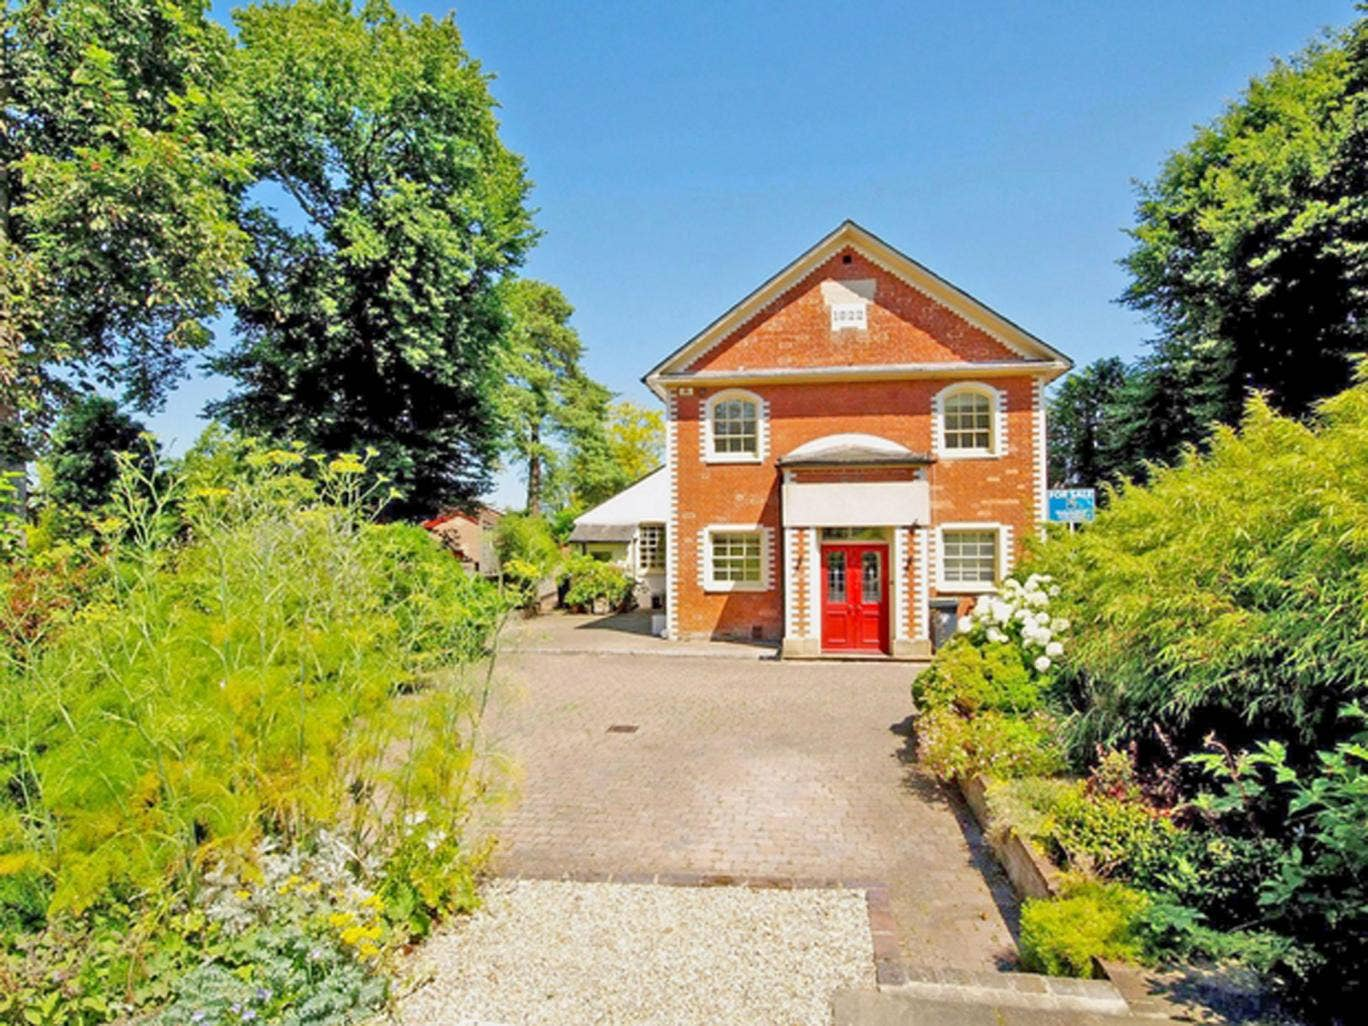 Five bedroom detached house for sale in The Old Chapel, 50 London Road, Saffron Walden CB11. On with Mullocks Wells for £695,000.